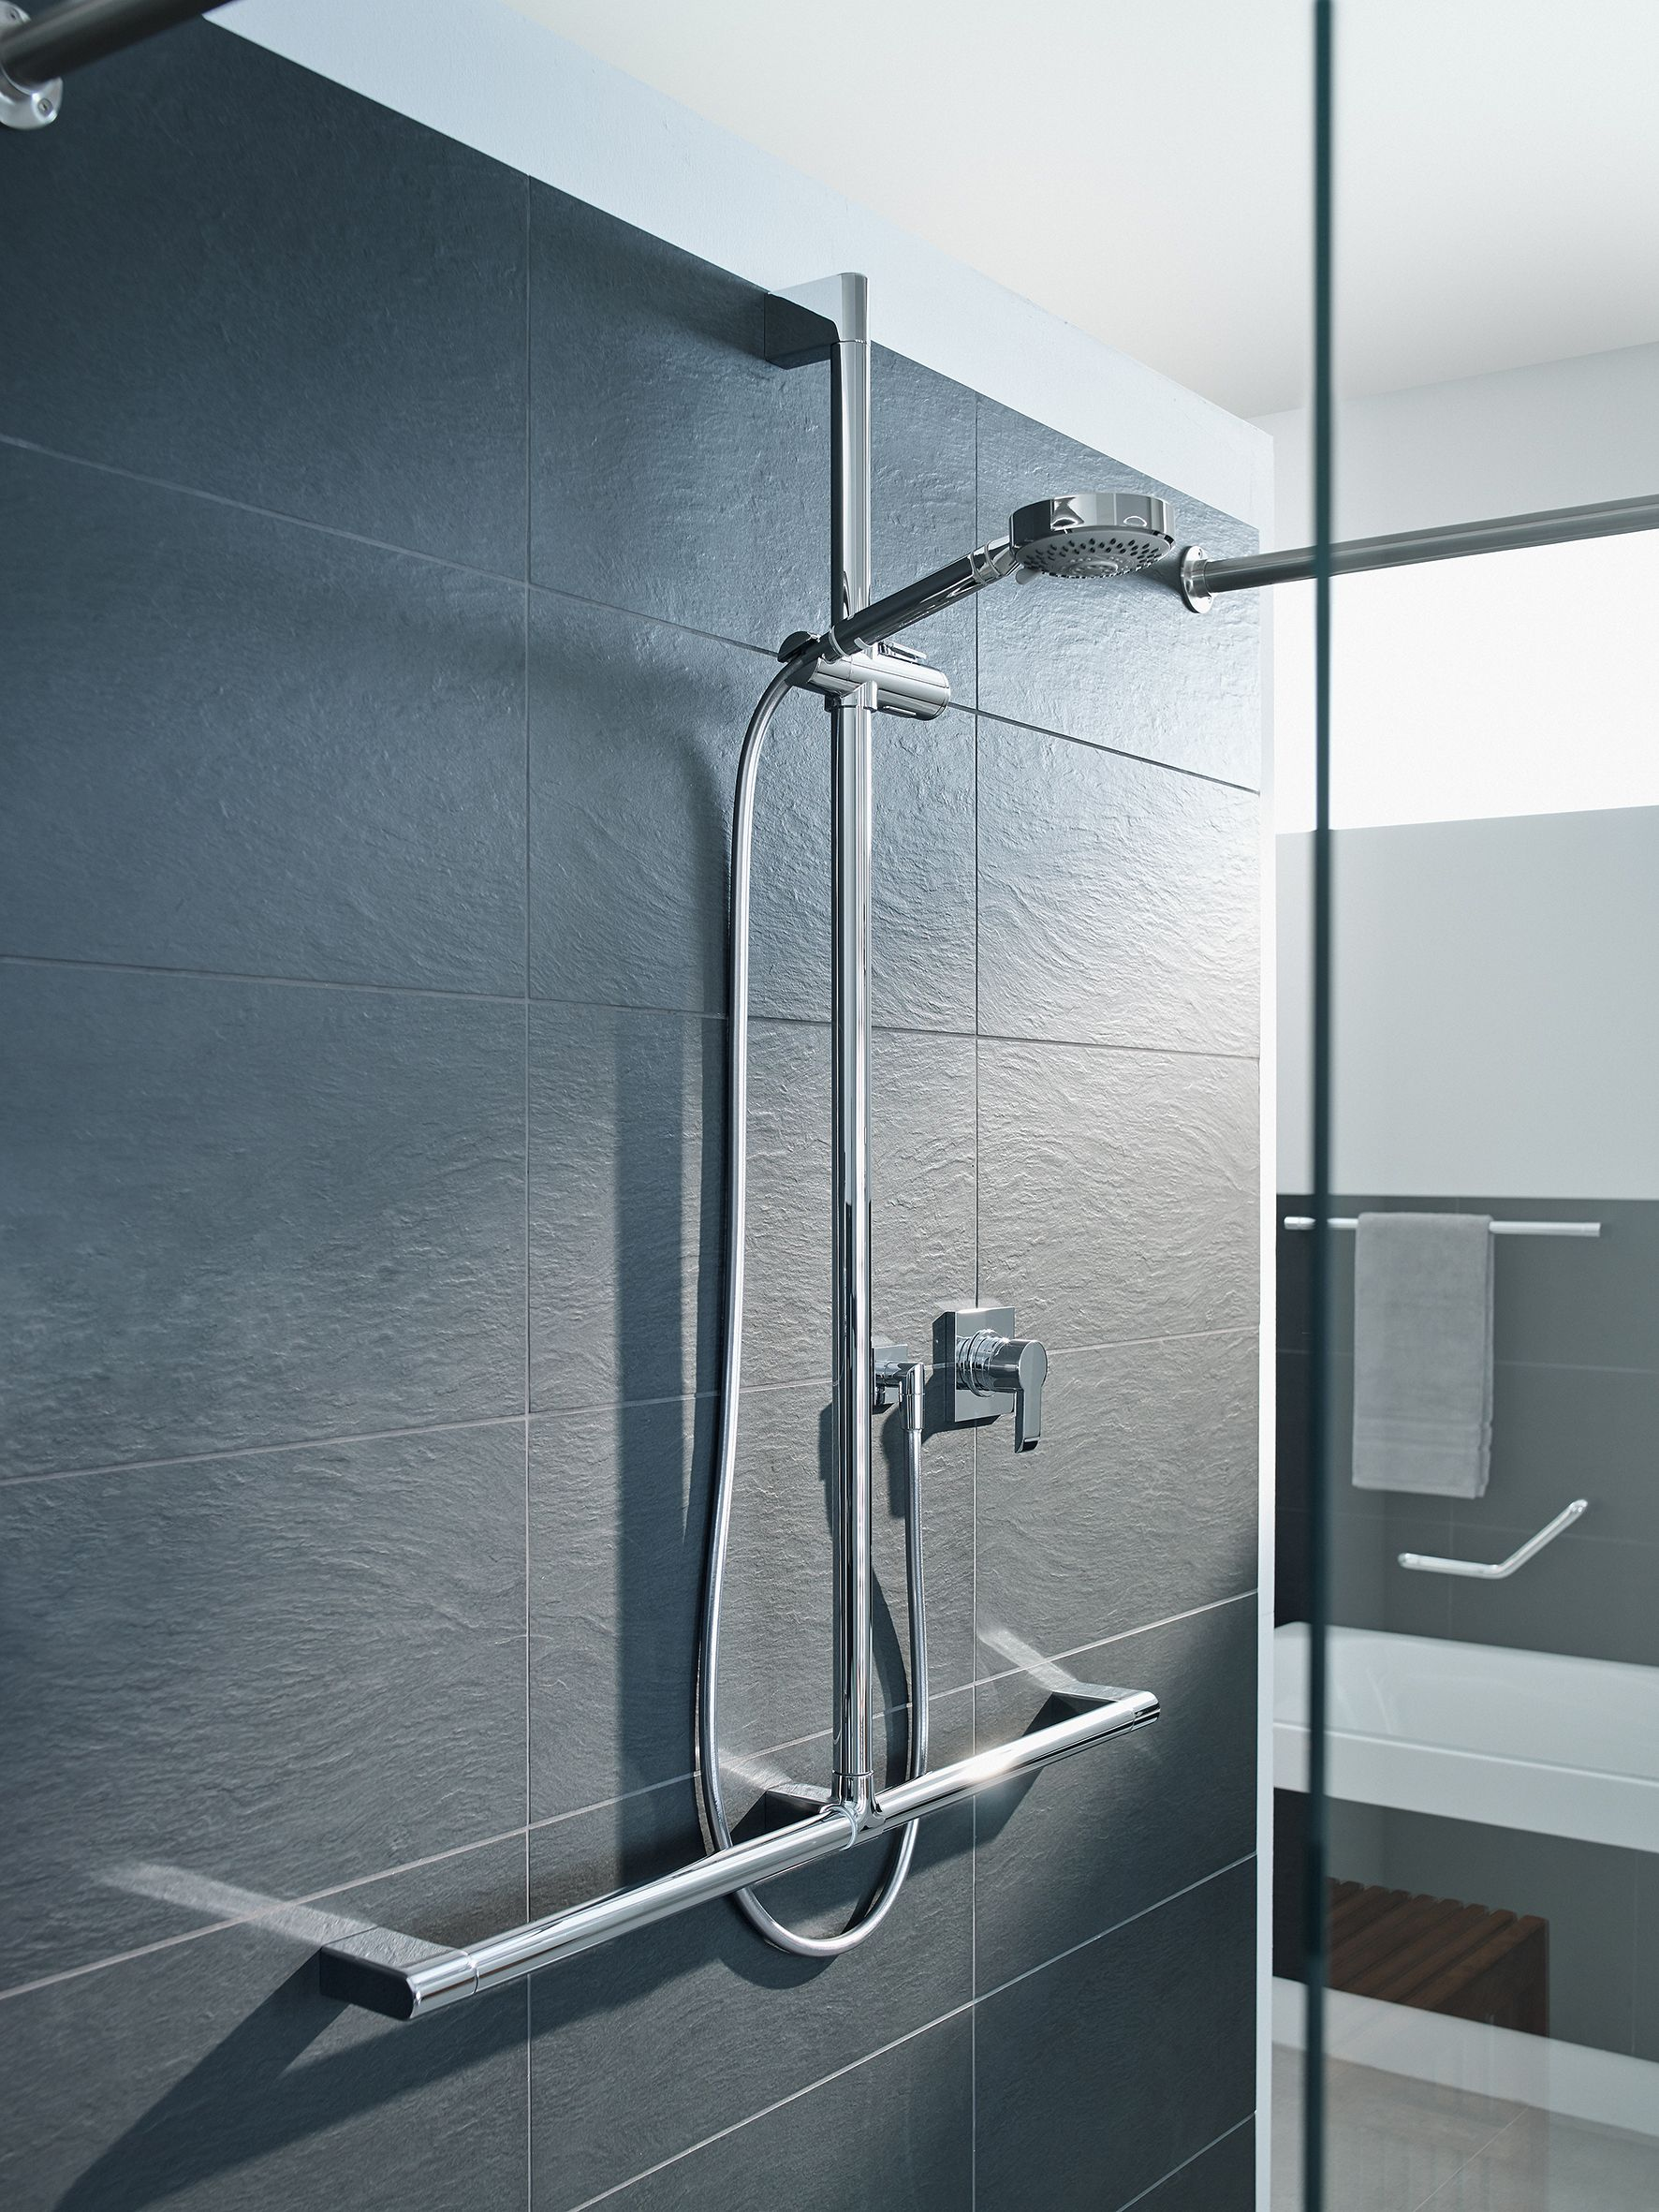 Shower Slide Rail with Grab Bar - luxury disabled bathrooms ...